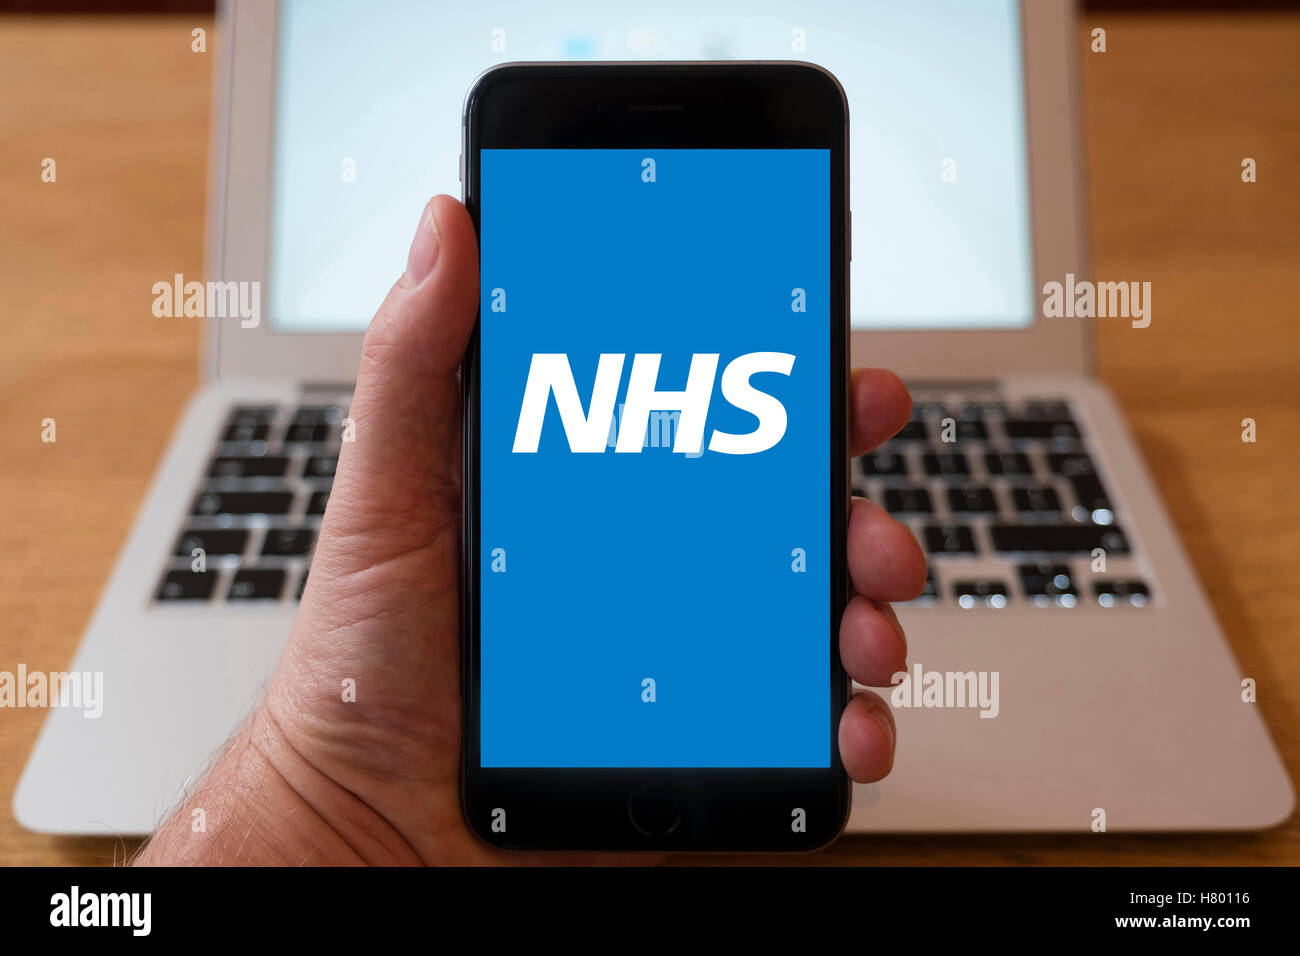 Using iPhone smartphone to display logo of NHS , National Health Service website Stock Photo